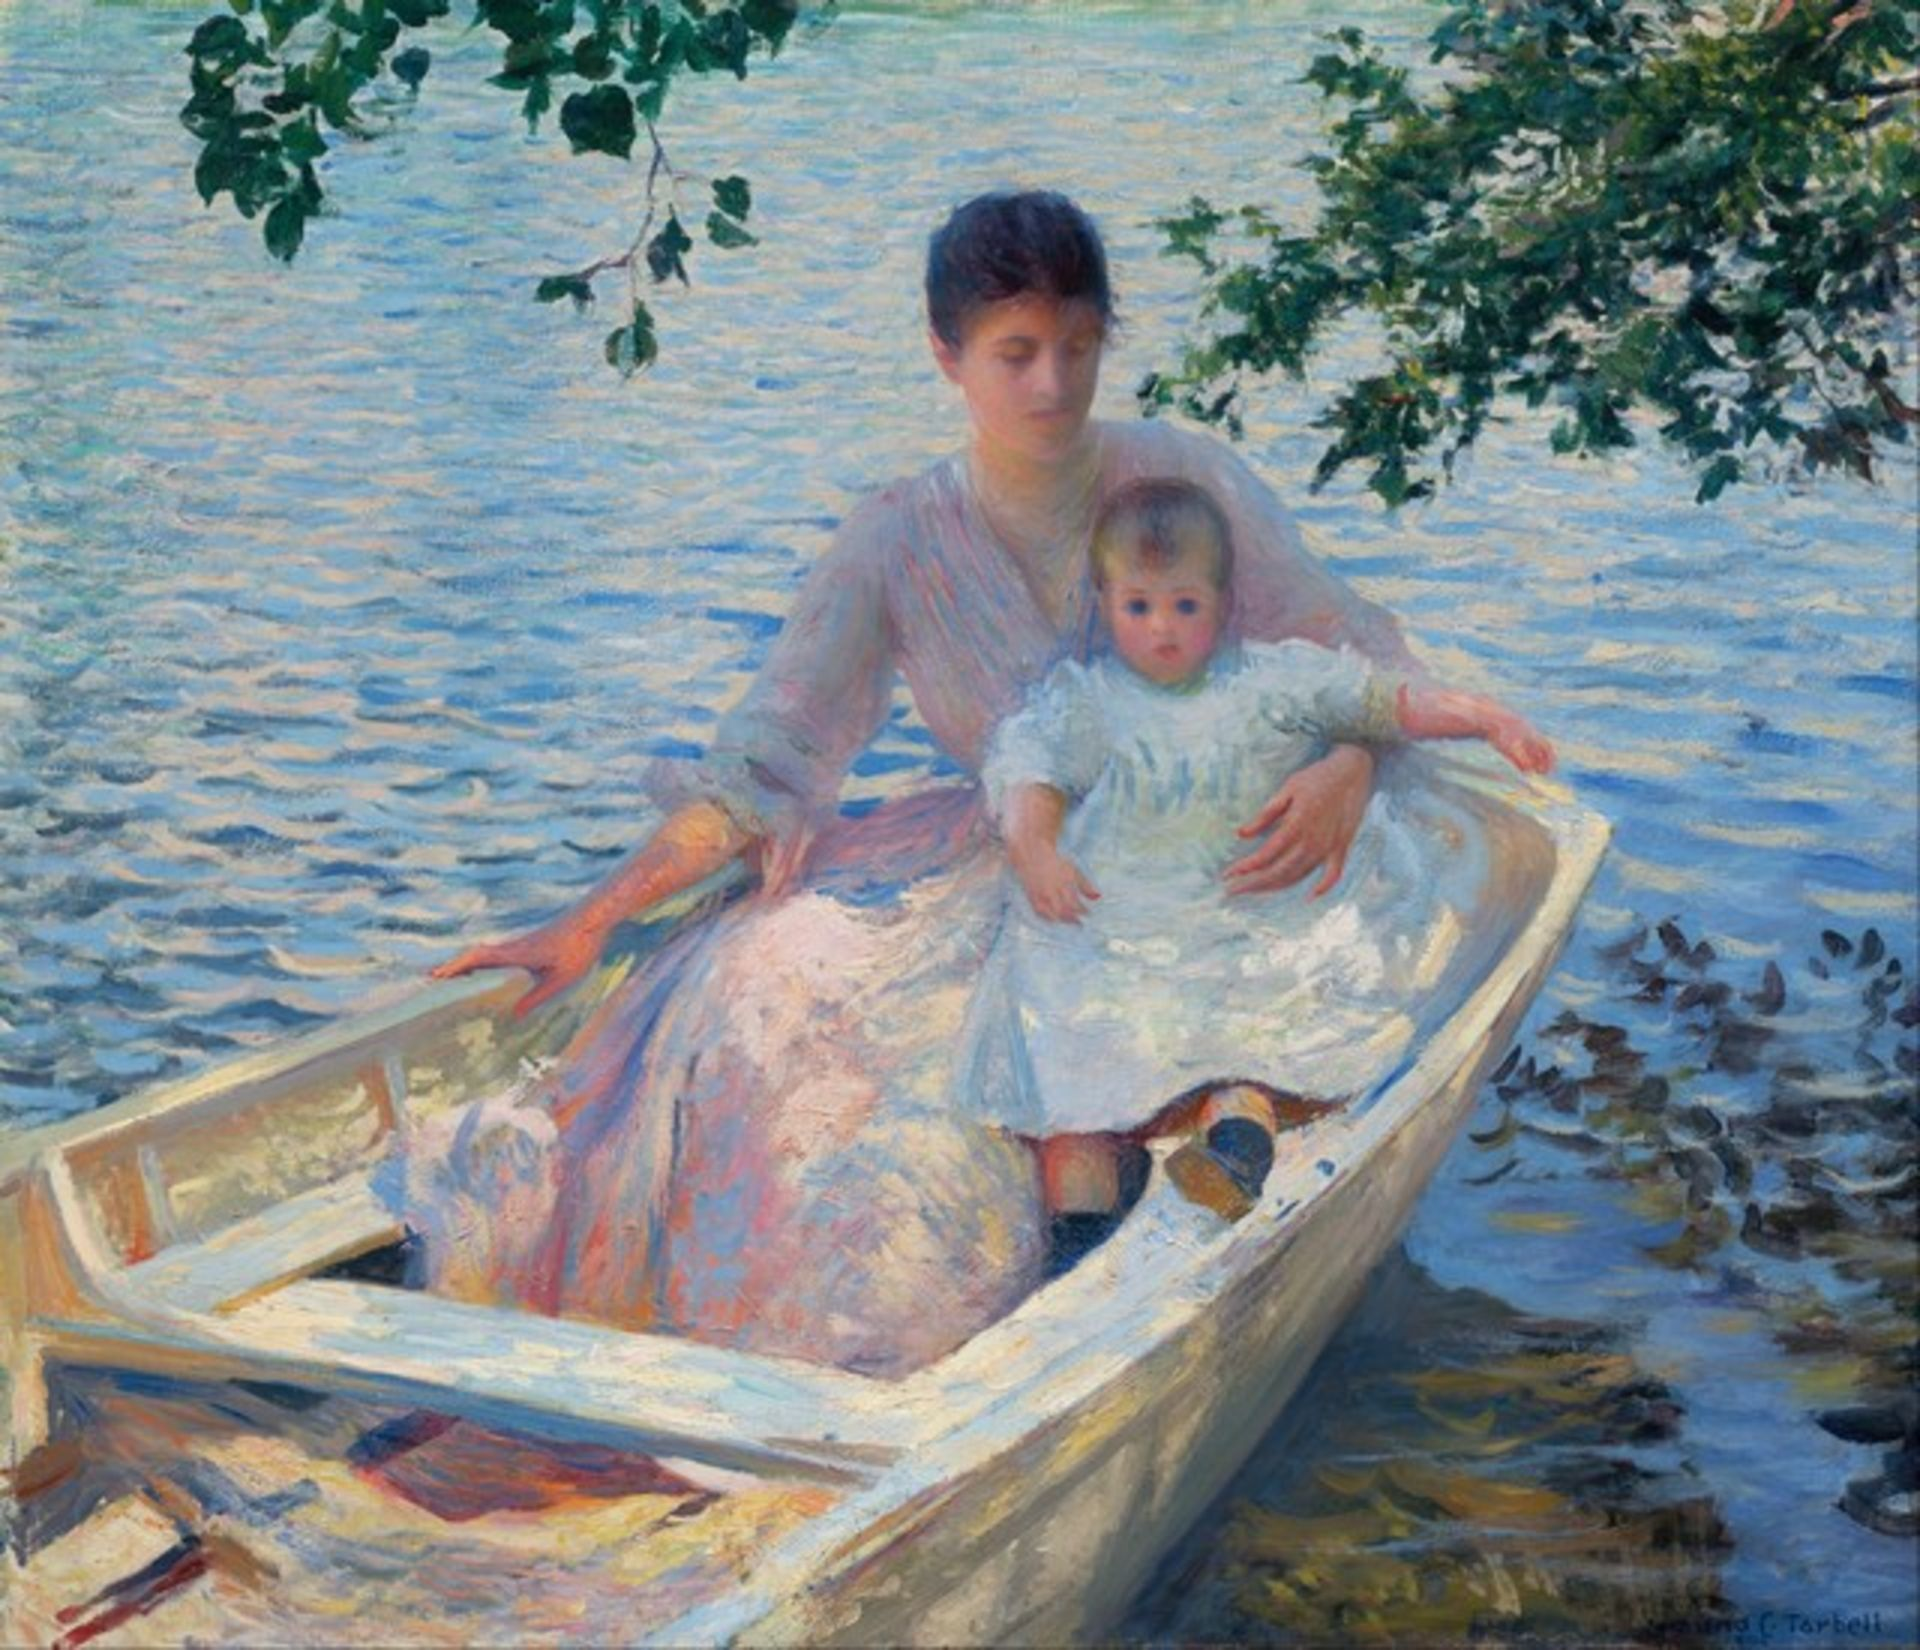 Tarbell - Mother and Child in a Boat